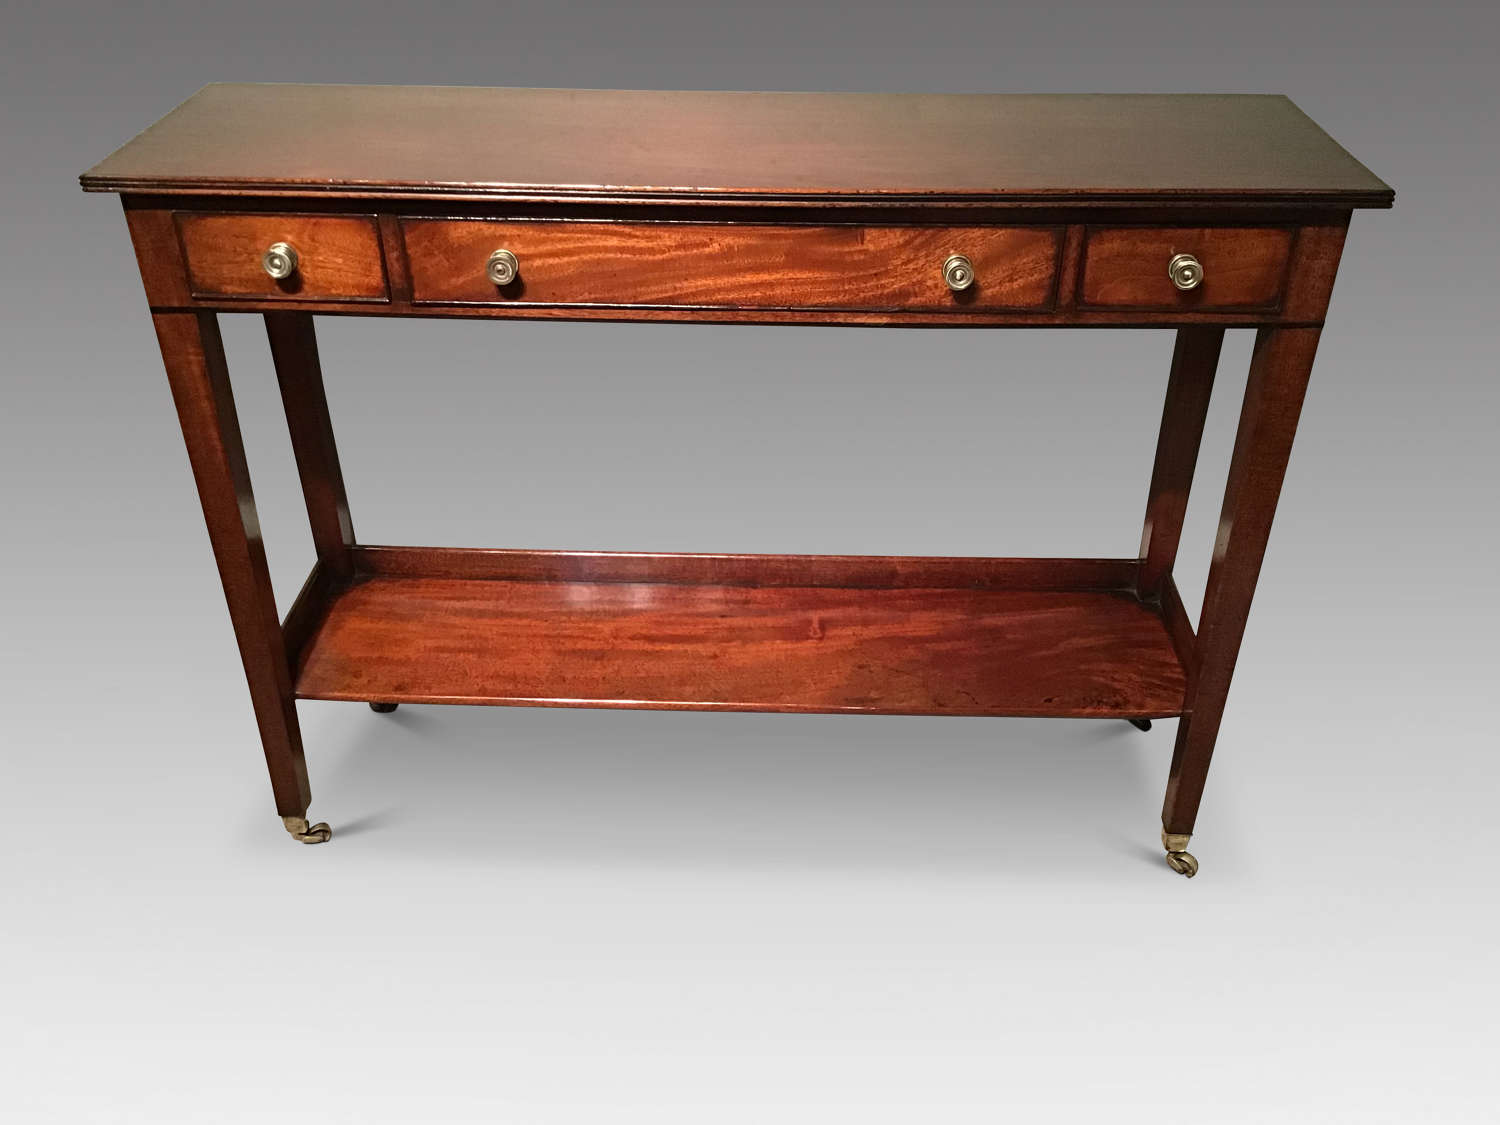 Shallow antique mahogany two tier sidetable.